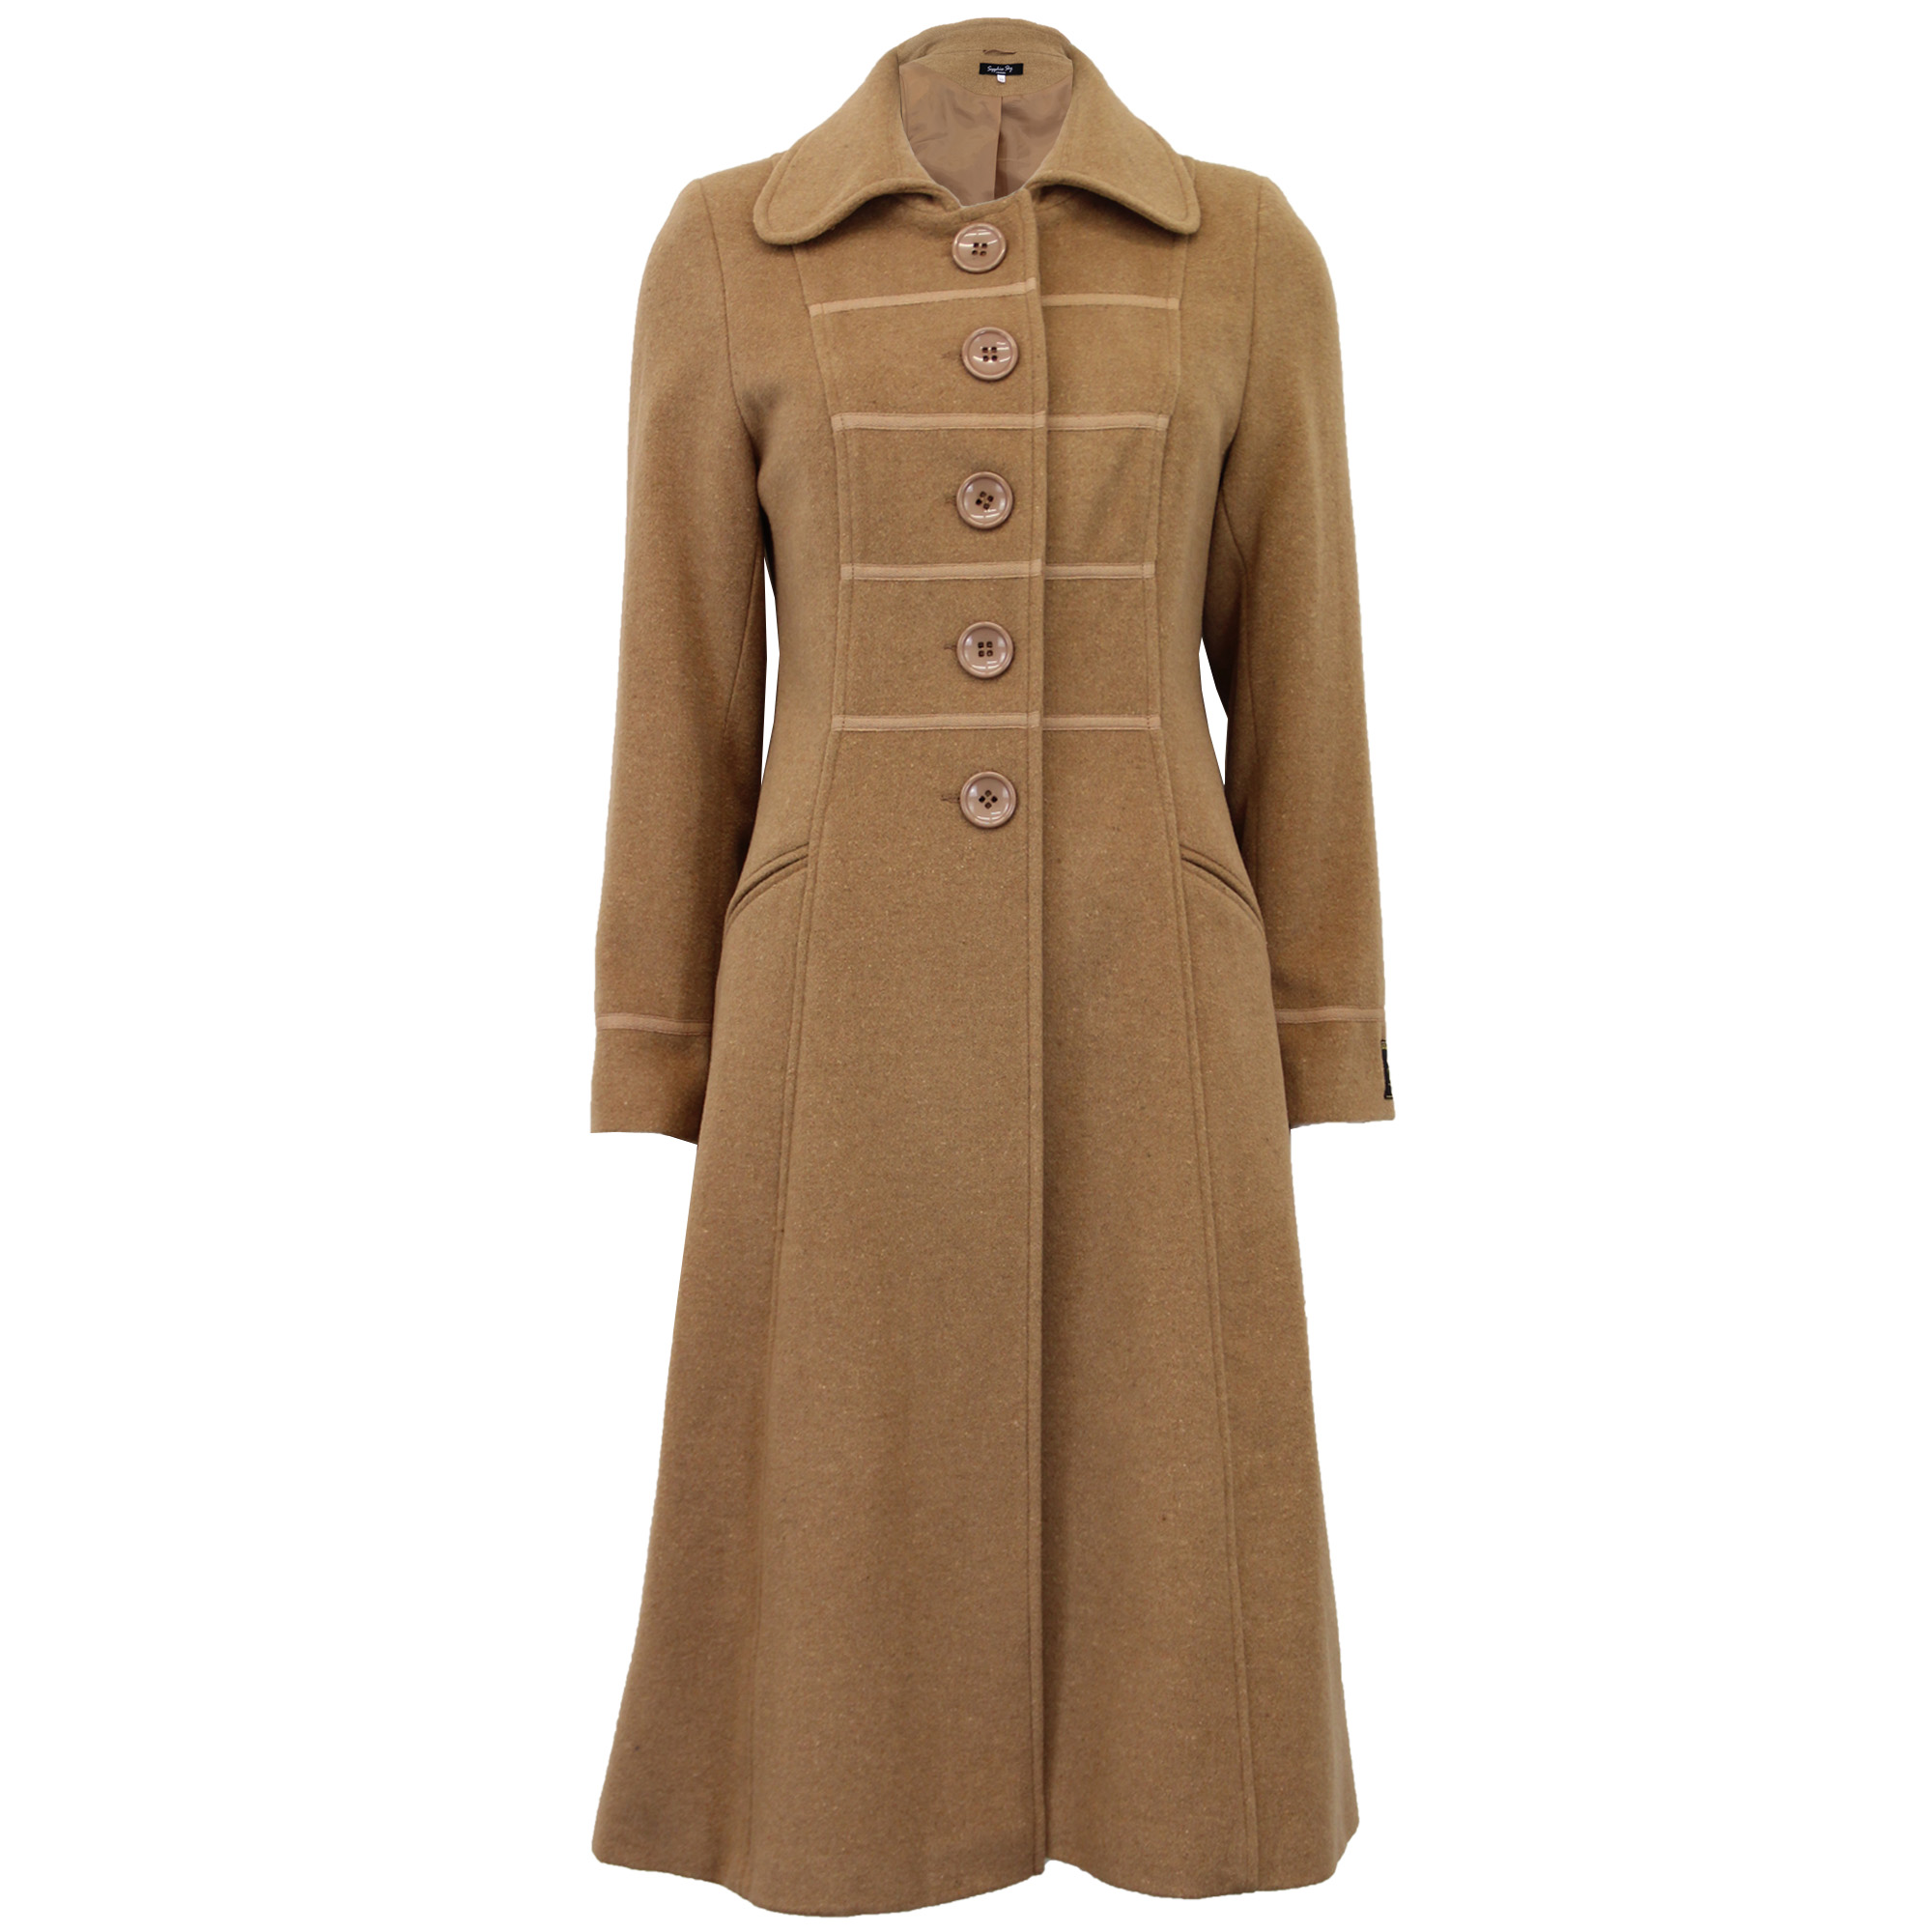 thumbnail 2 - Ladies-Wool-Cashmere-Coat-Womens-Jacket-Outerwear-Trench-Overcoat-Winter-Warm